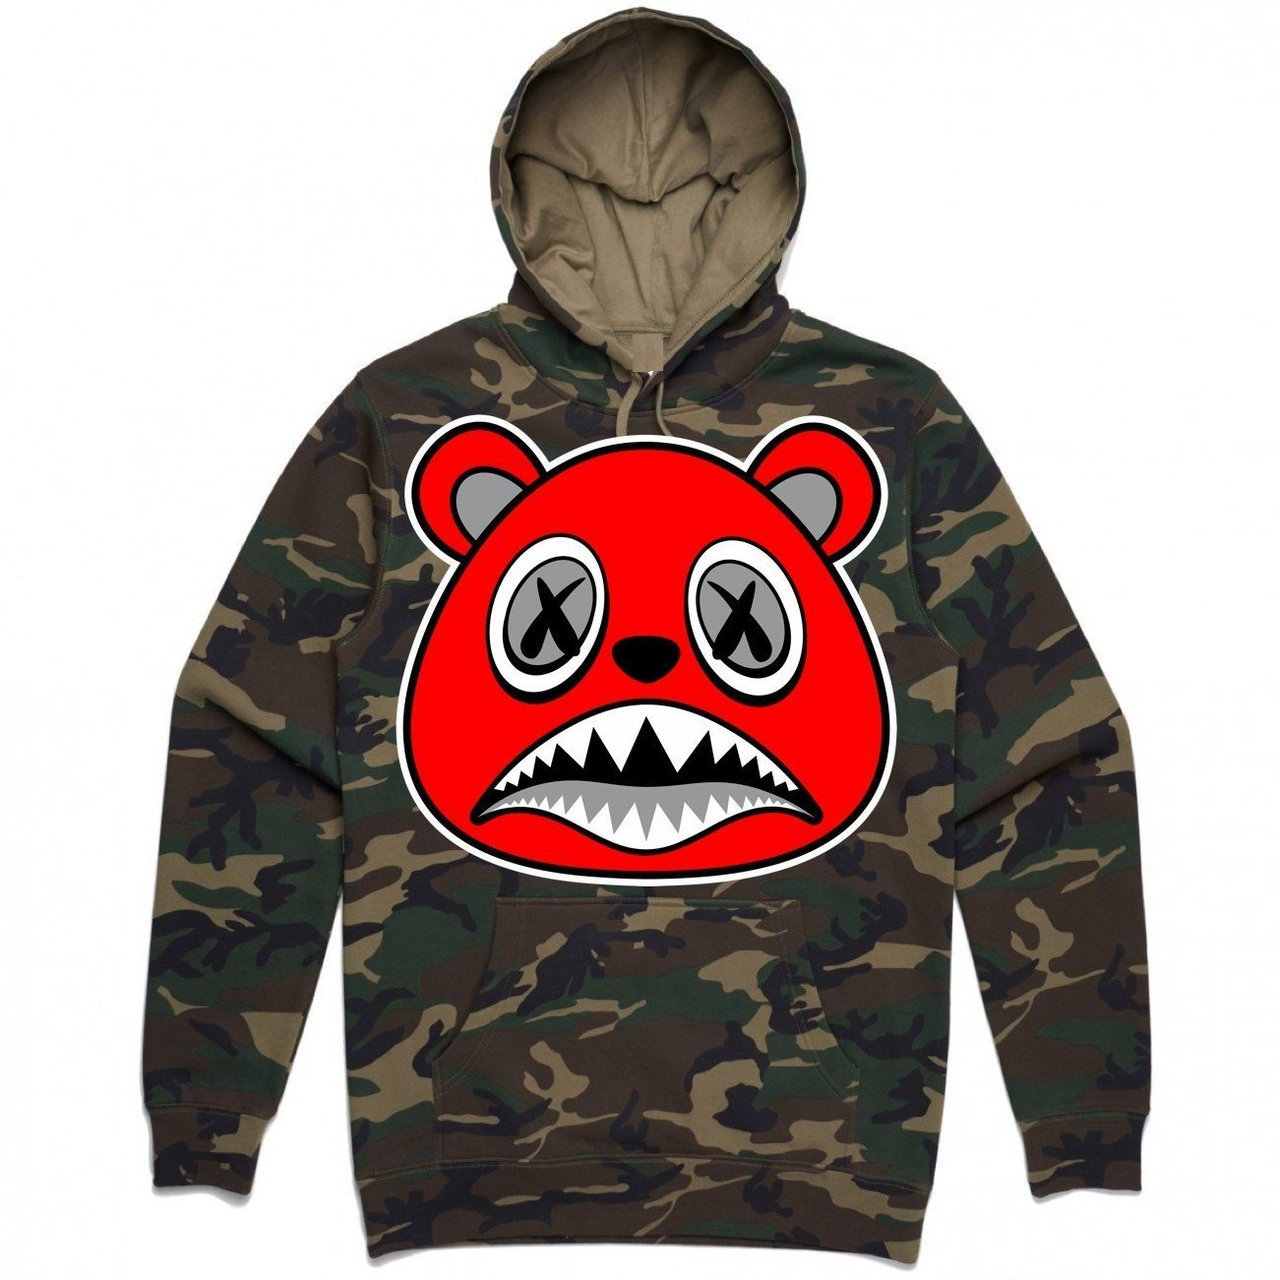 7e433444a35 BAWS Bear Red Logo Camo Hoodie - KCT Streetwear is the OFFICIAL ...